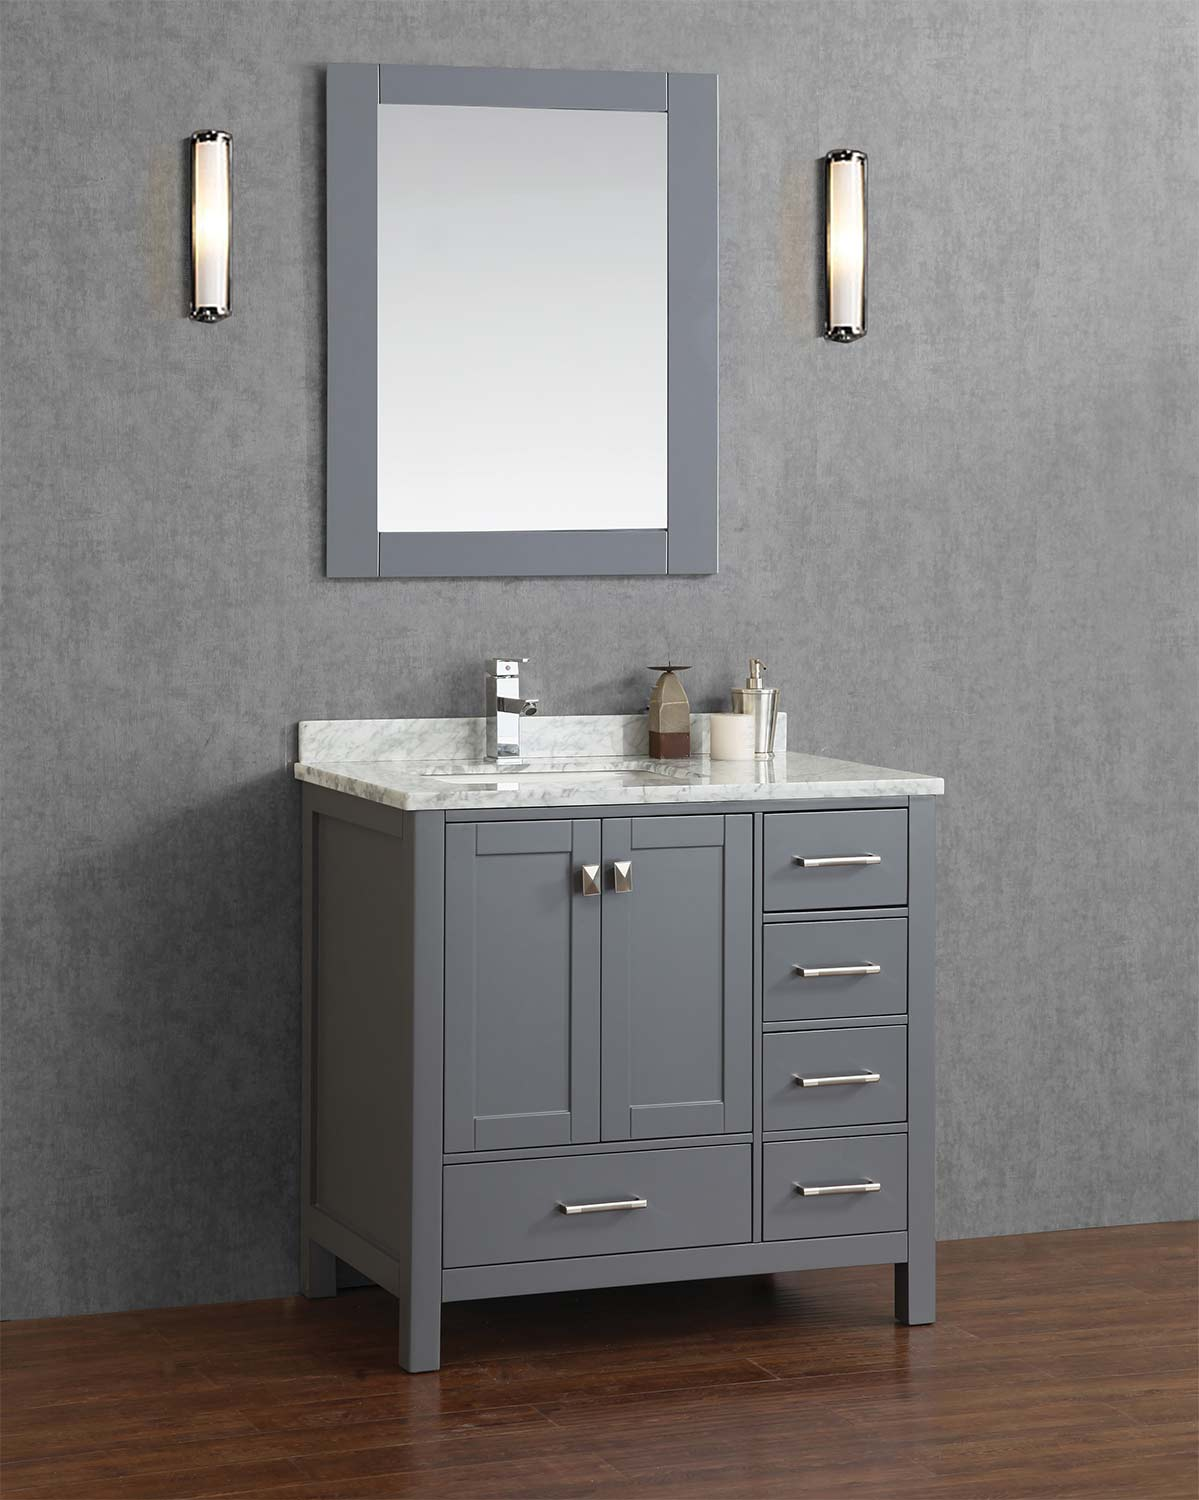 grey bathroom sink cabinets. Vincent 36  Solid Wood Single Bathroom Vanity in Charcoal Grey HM 13001 WMSQ CG Buy Inch